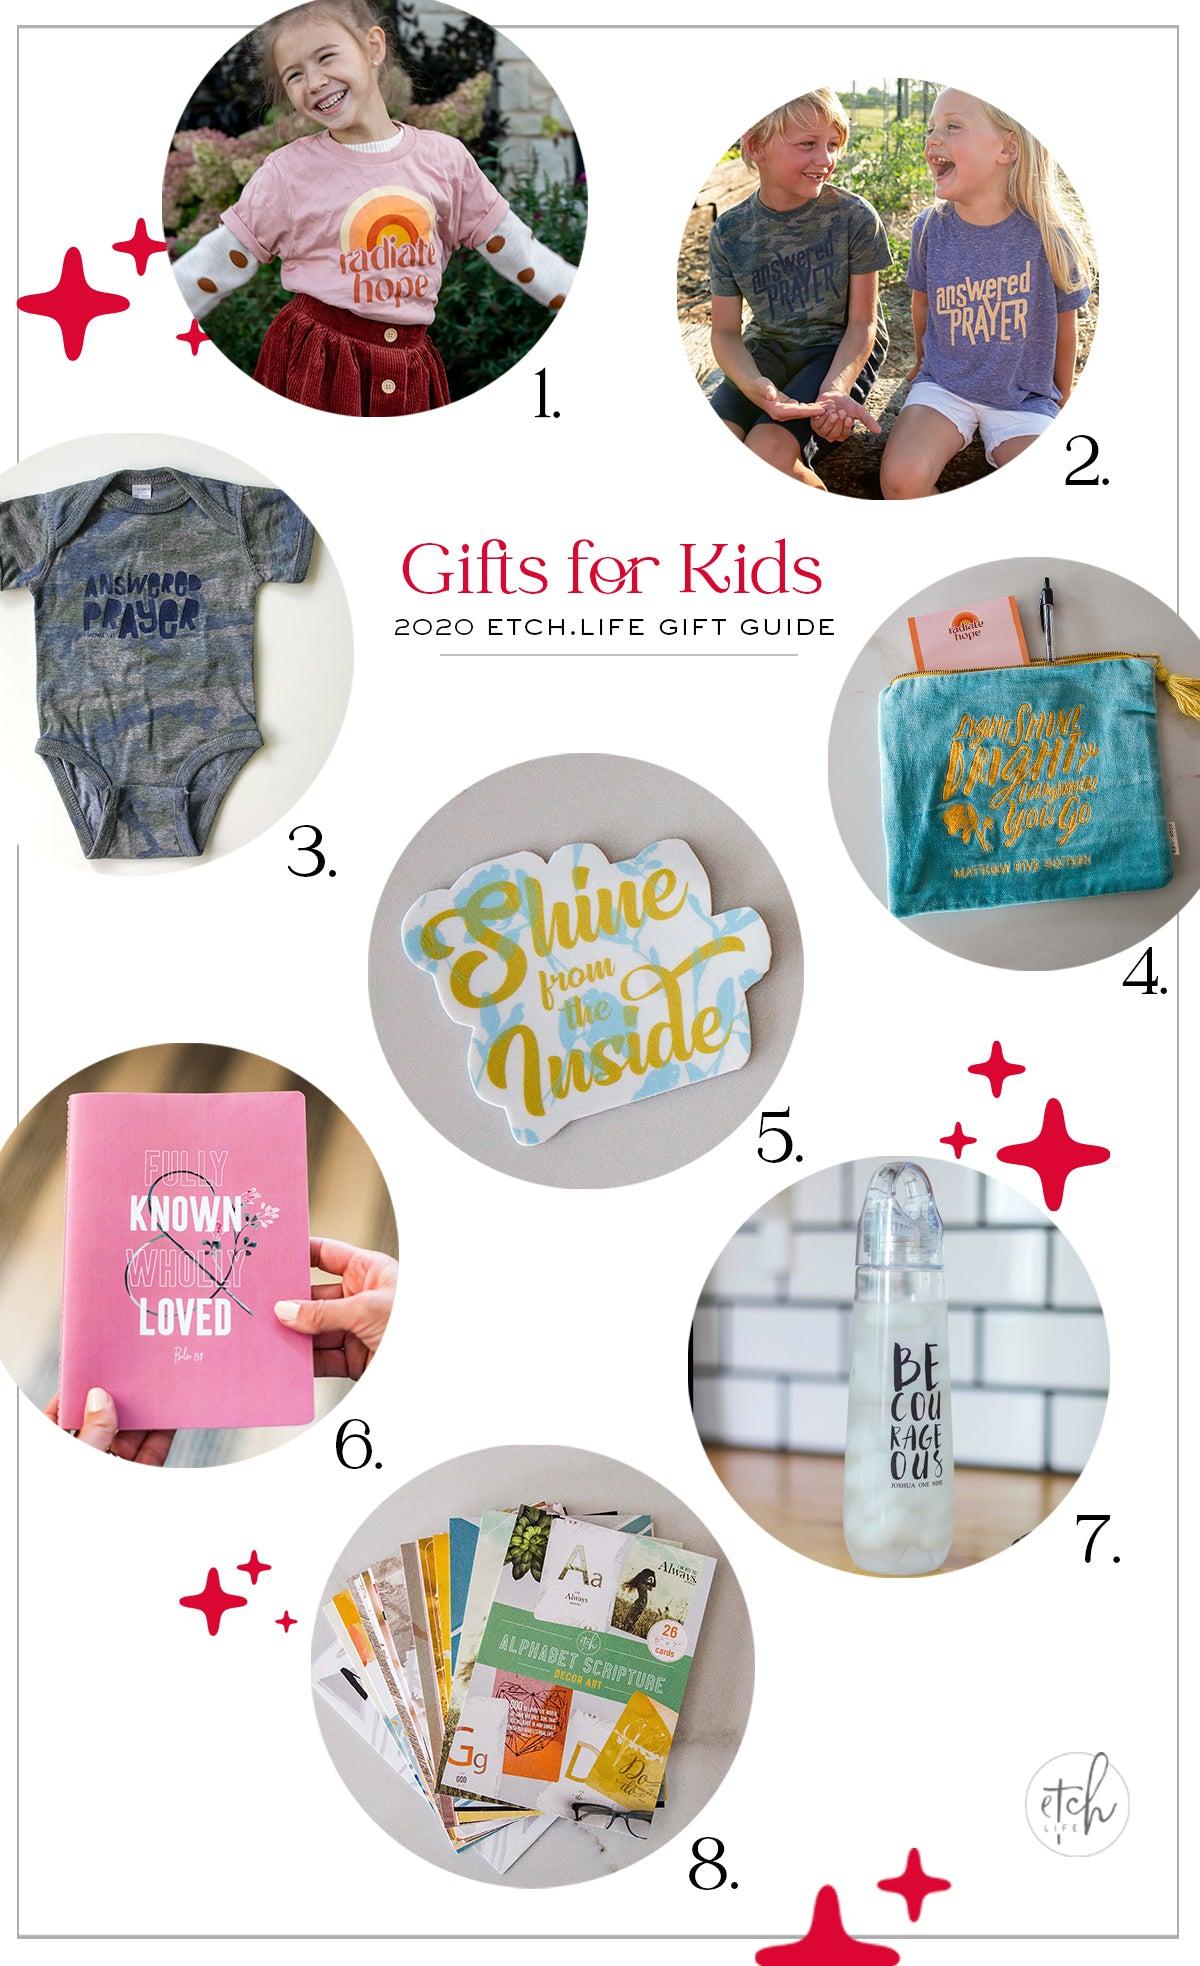 EtchLife Gift Guide Gifts for Kids